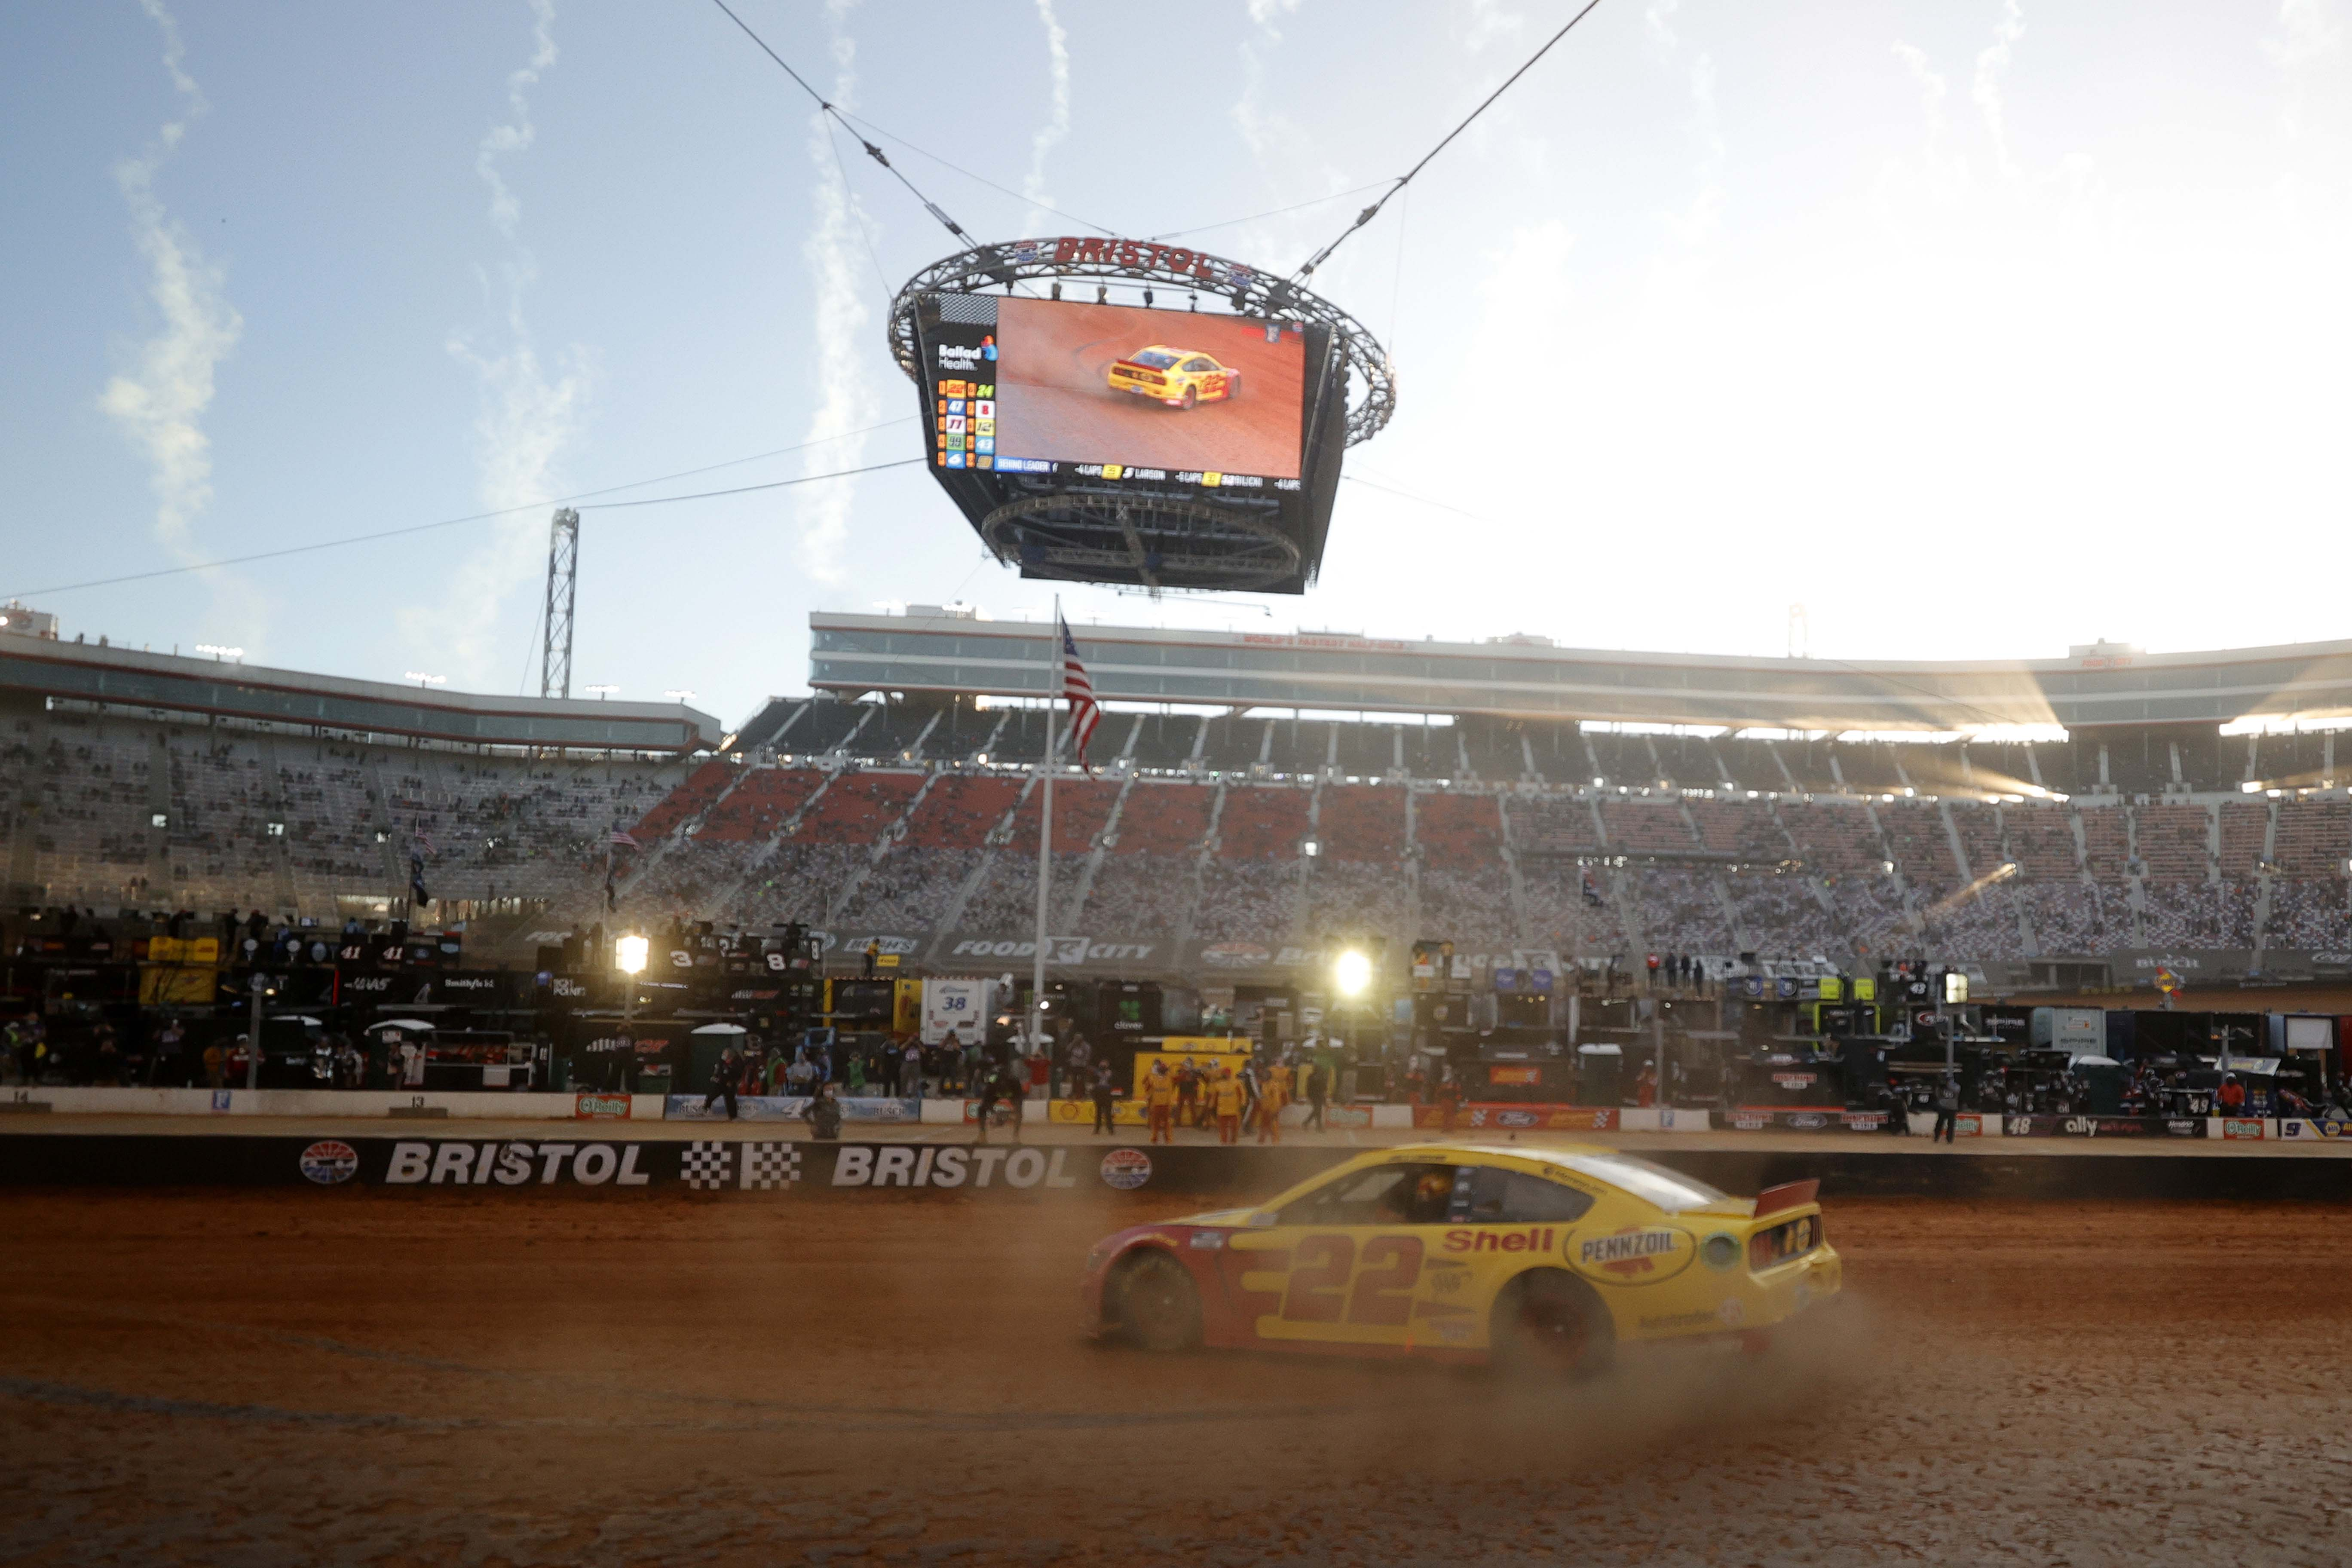 Joey Logano wins on the Bristol Dirt Track - NASCAR Cup Series